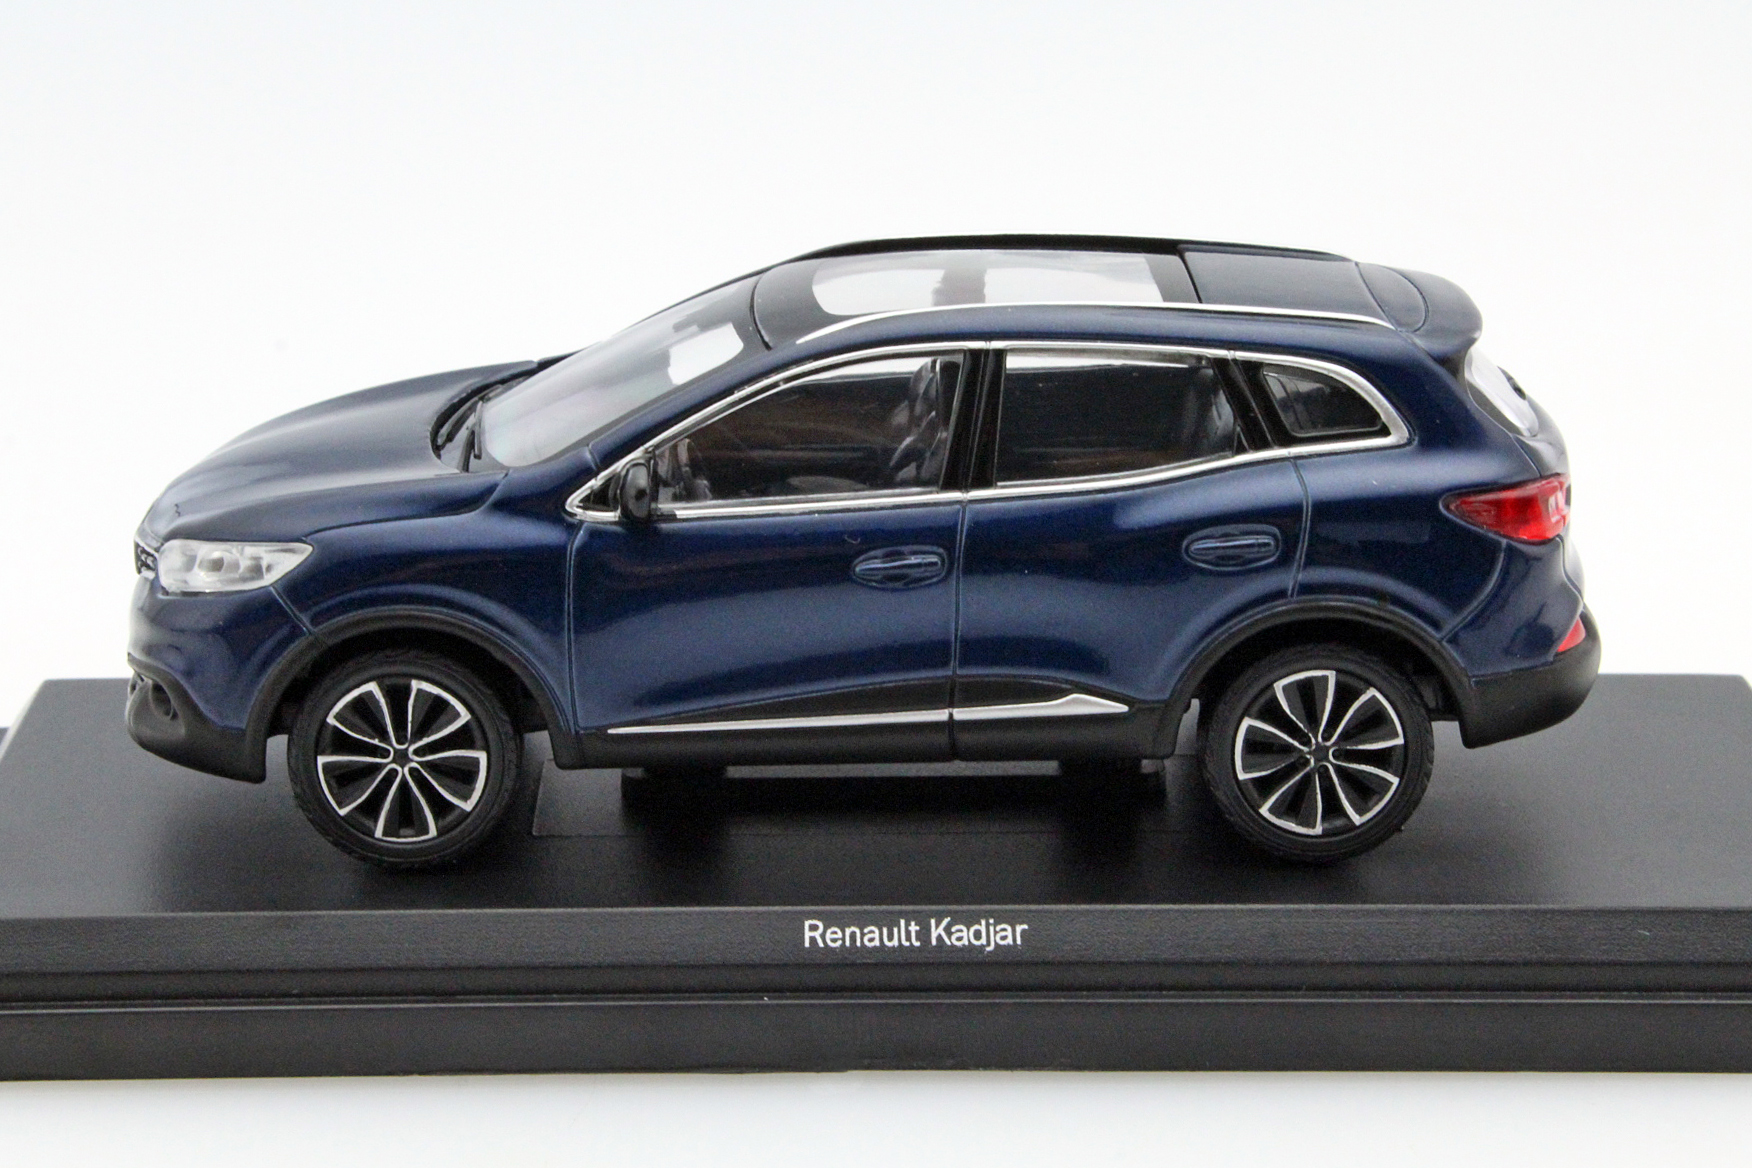 renault kadjar 2015 cosmos blue die cast model norev 517781. Black Bedroom Furniture Sets. Home Design Ideas